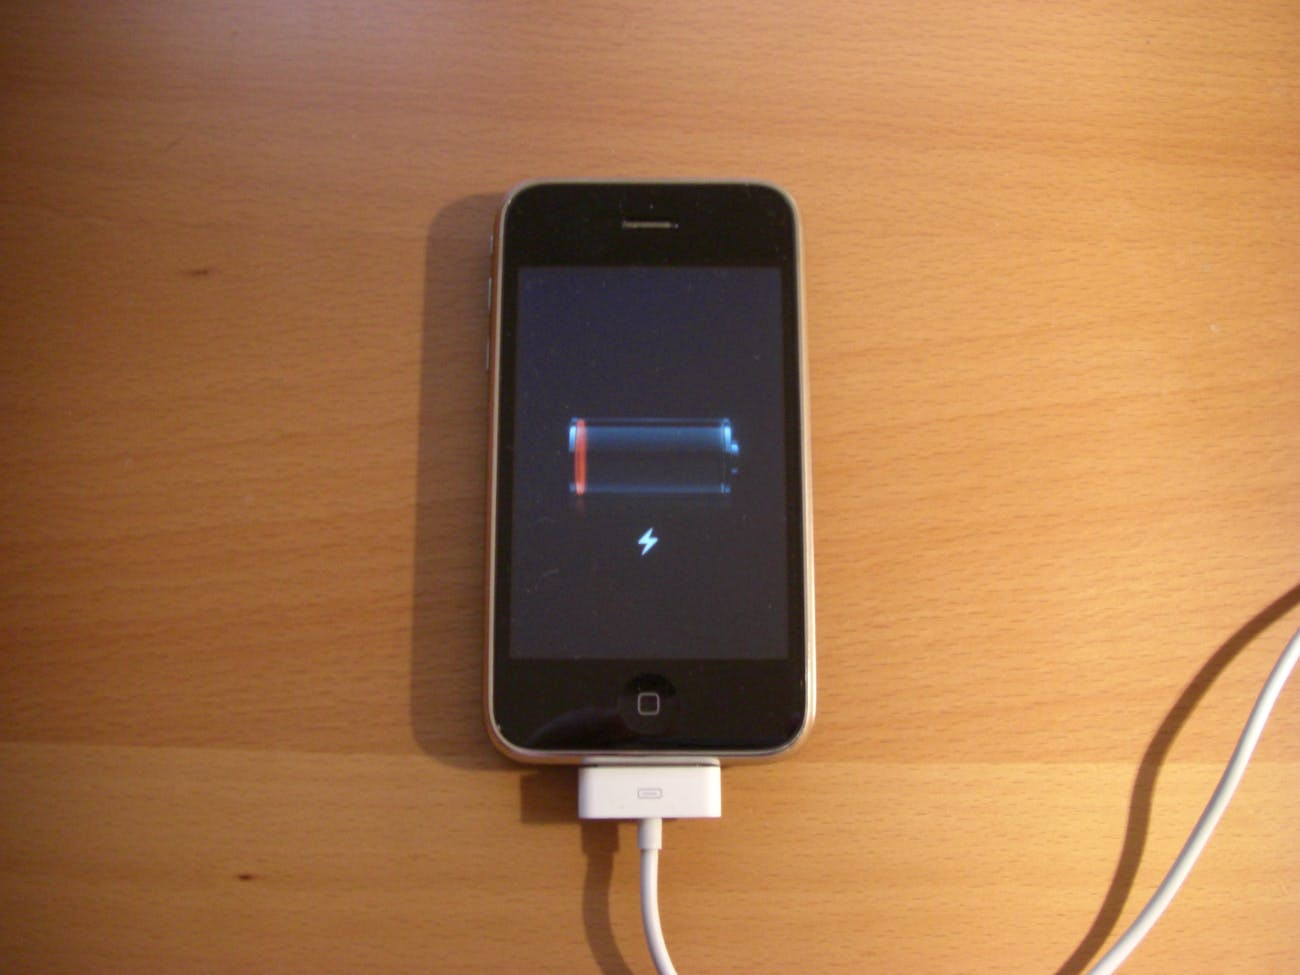 iPhone 3G won't charge anymore